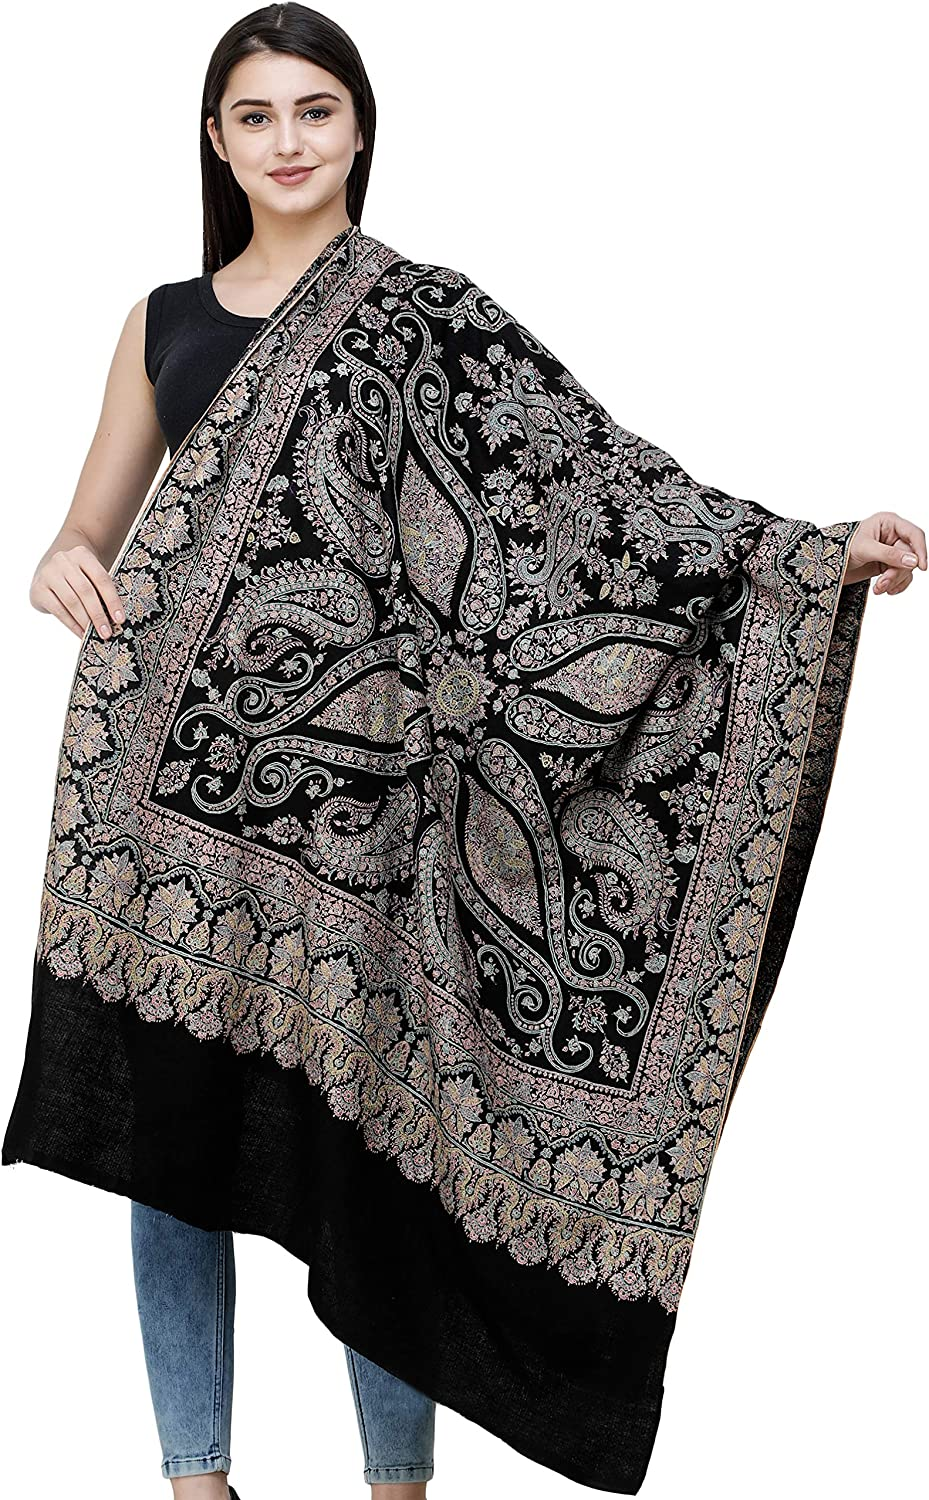 Exotic India Pirate Black Pure Pashmina Shawl From Kashmir With Sozni Hand Embroidered Flowers And Paisleys Amazon Co Uk Clothing